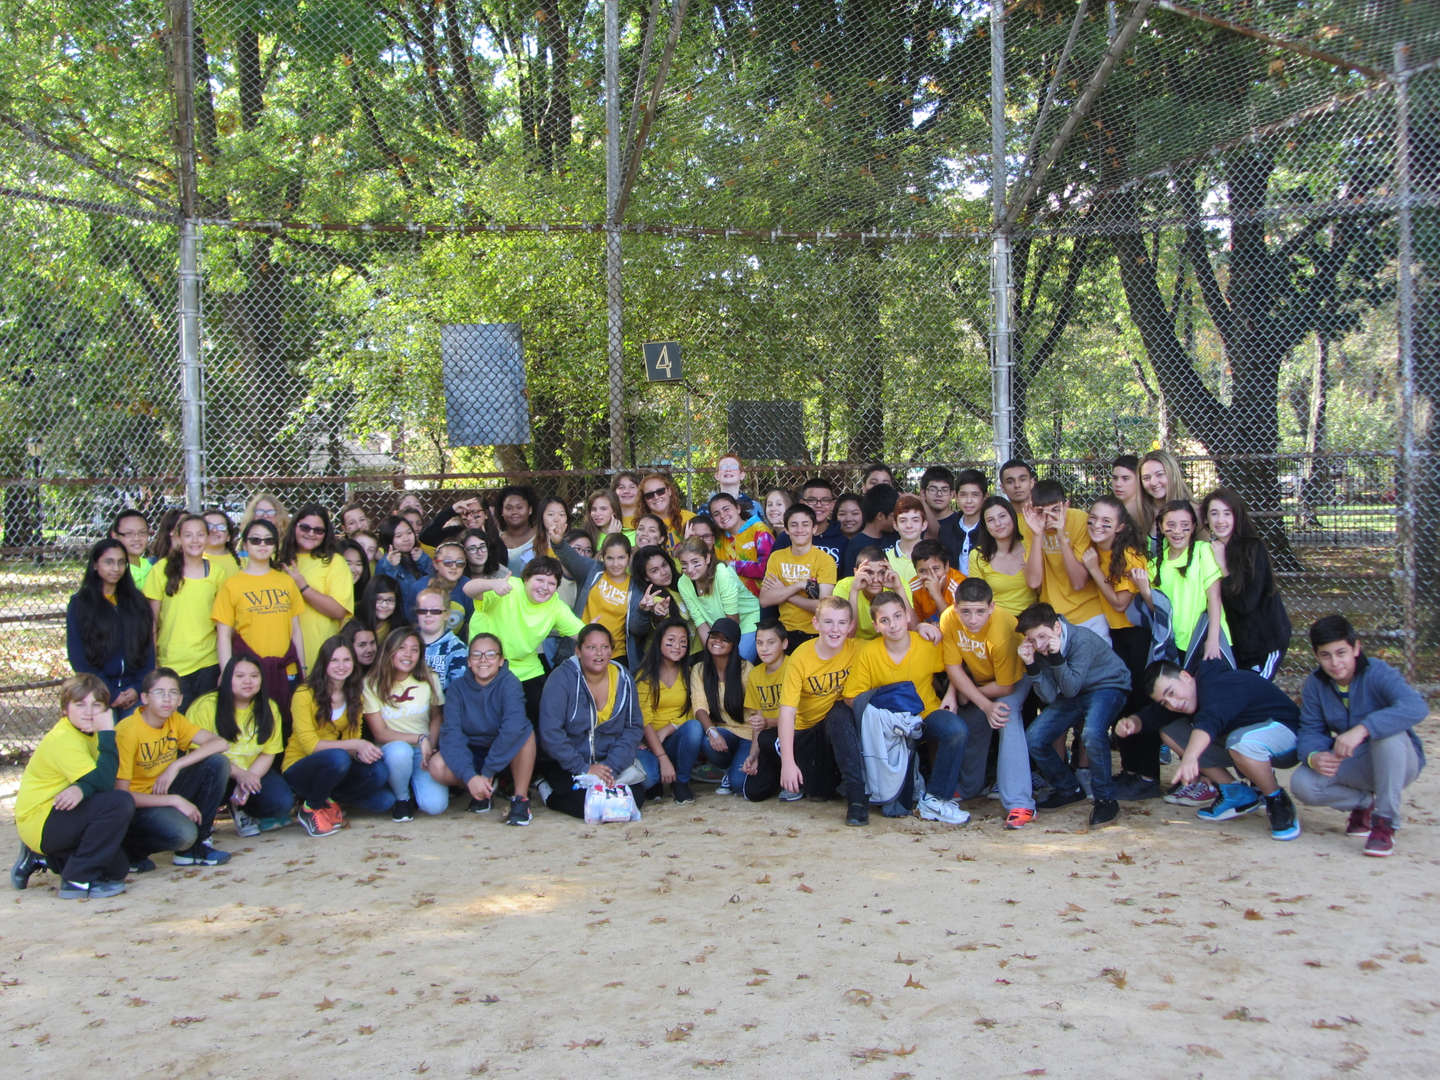 group of students posing in yellow tee shirts for field day